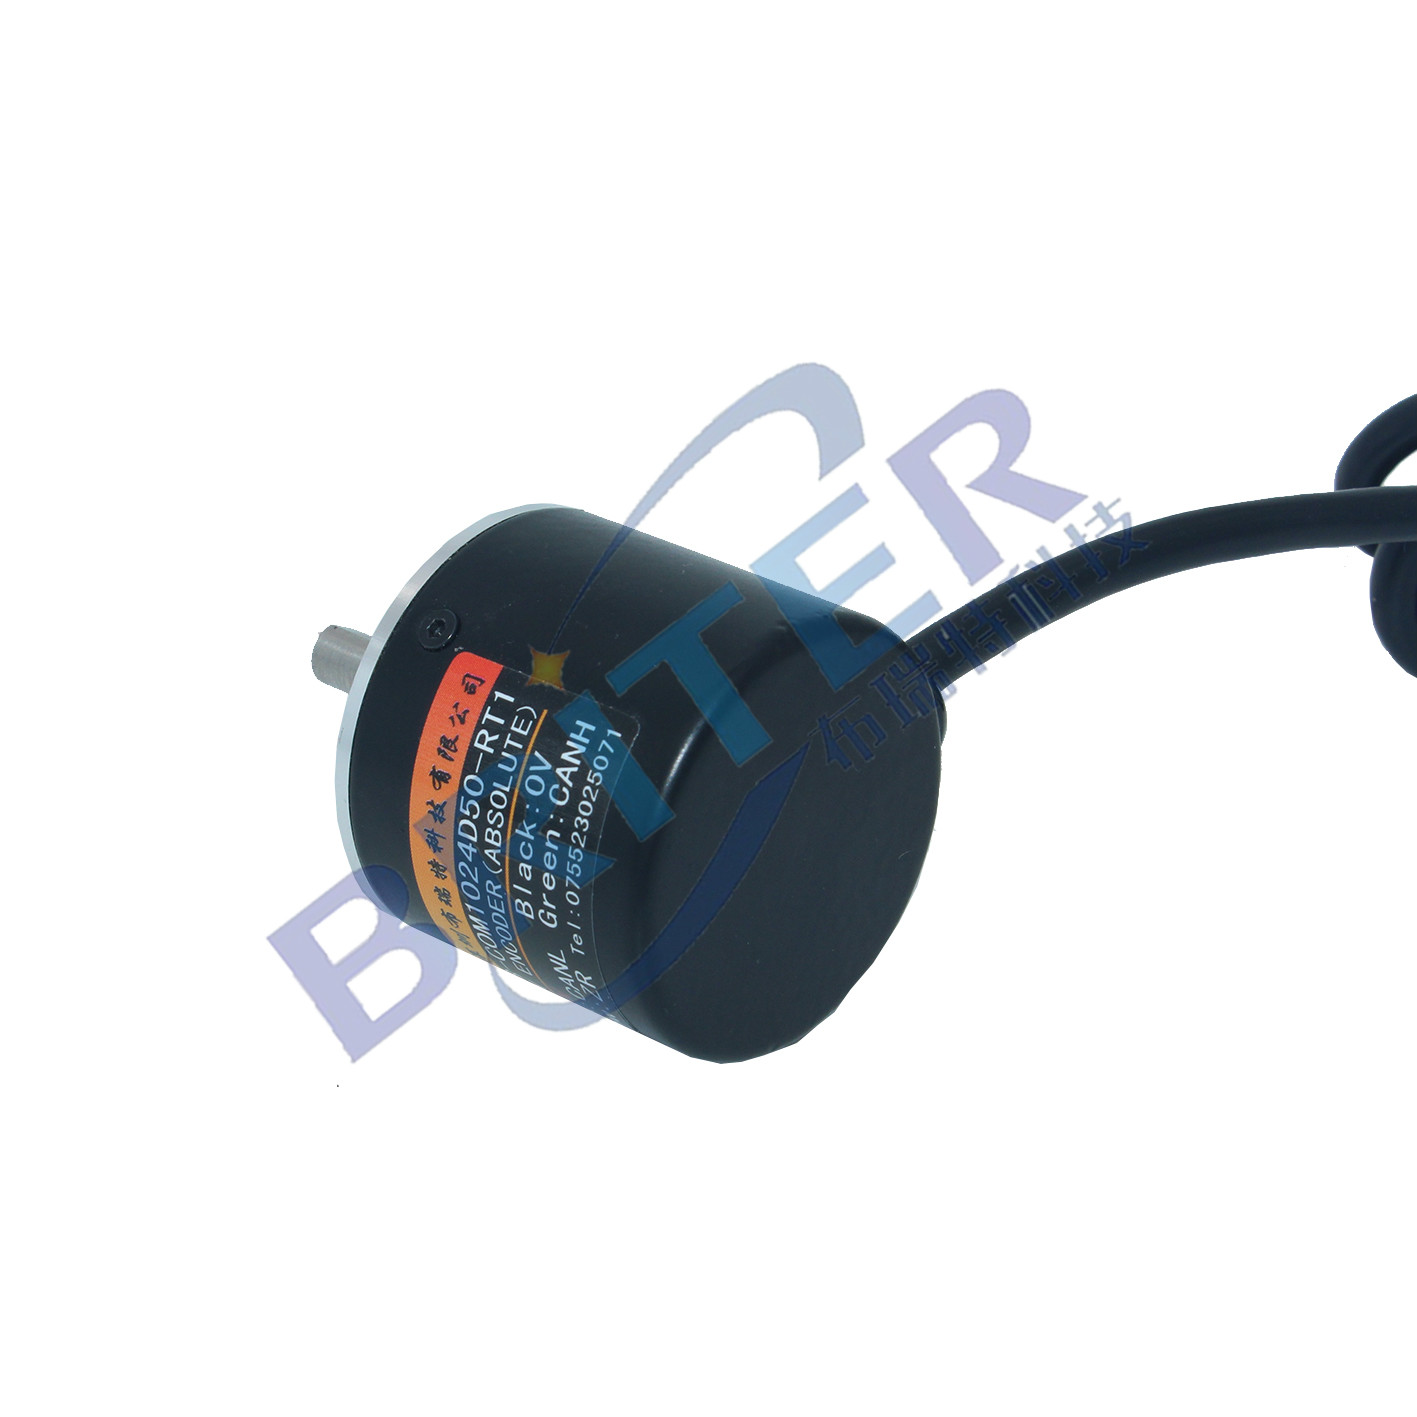 24-turn Multi-turn Encoder CAN Angle Rotation Absolute Encoder Power-off Memory